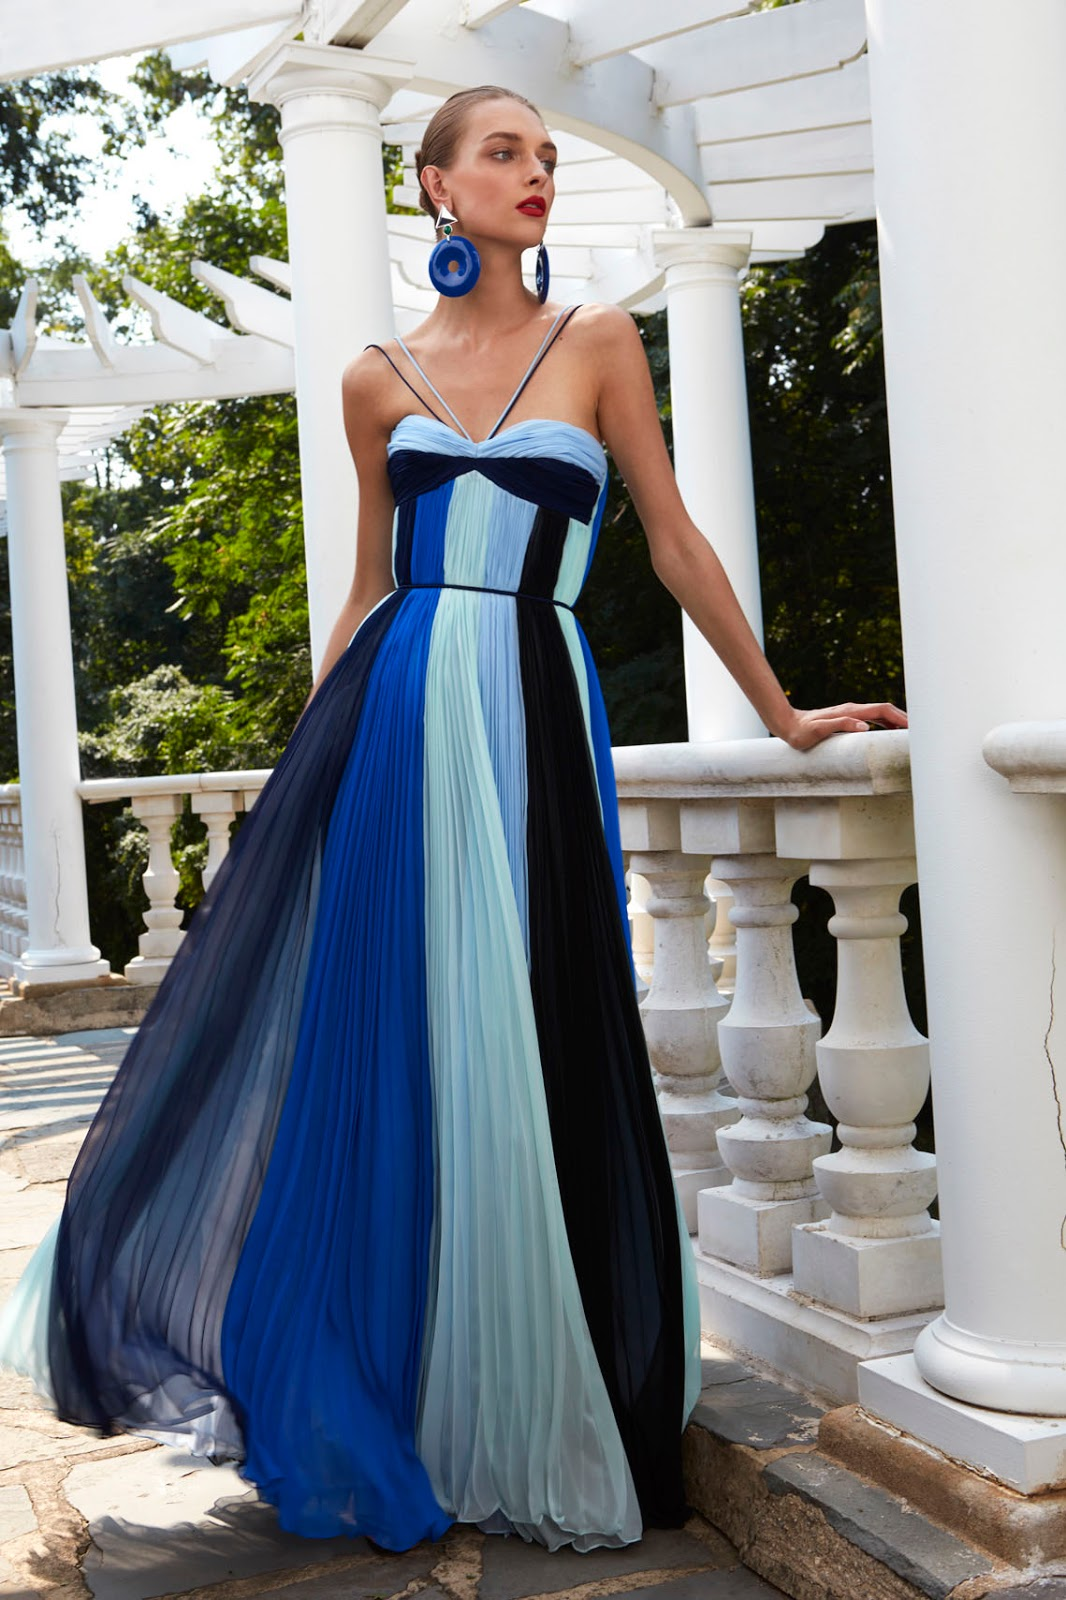 0018ef859c44 While surfing this afternoon on internet I found these stunning gowns from  fashion designer Elizabeth Kennedy for Spring 2017. Aren t they gorgeous to  see